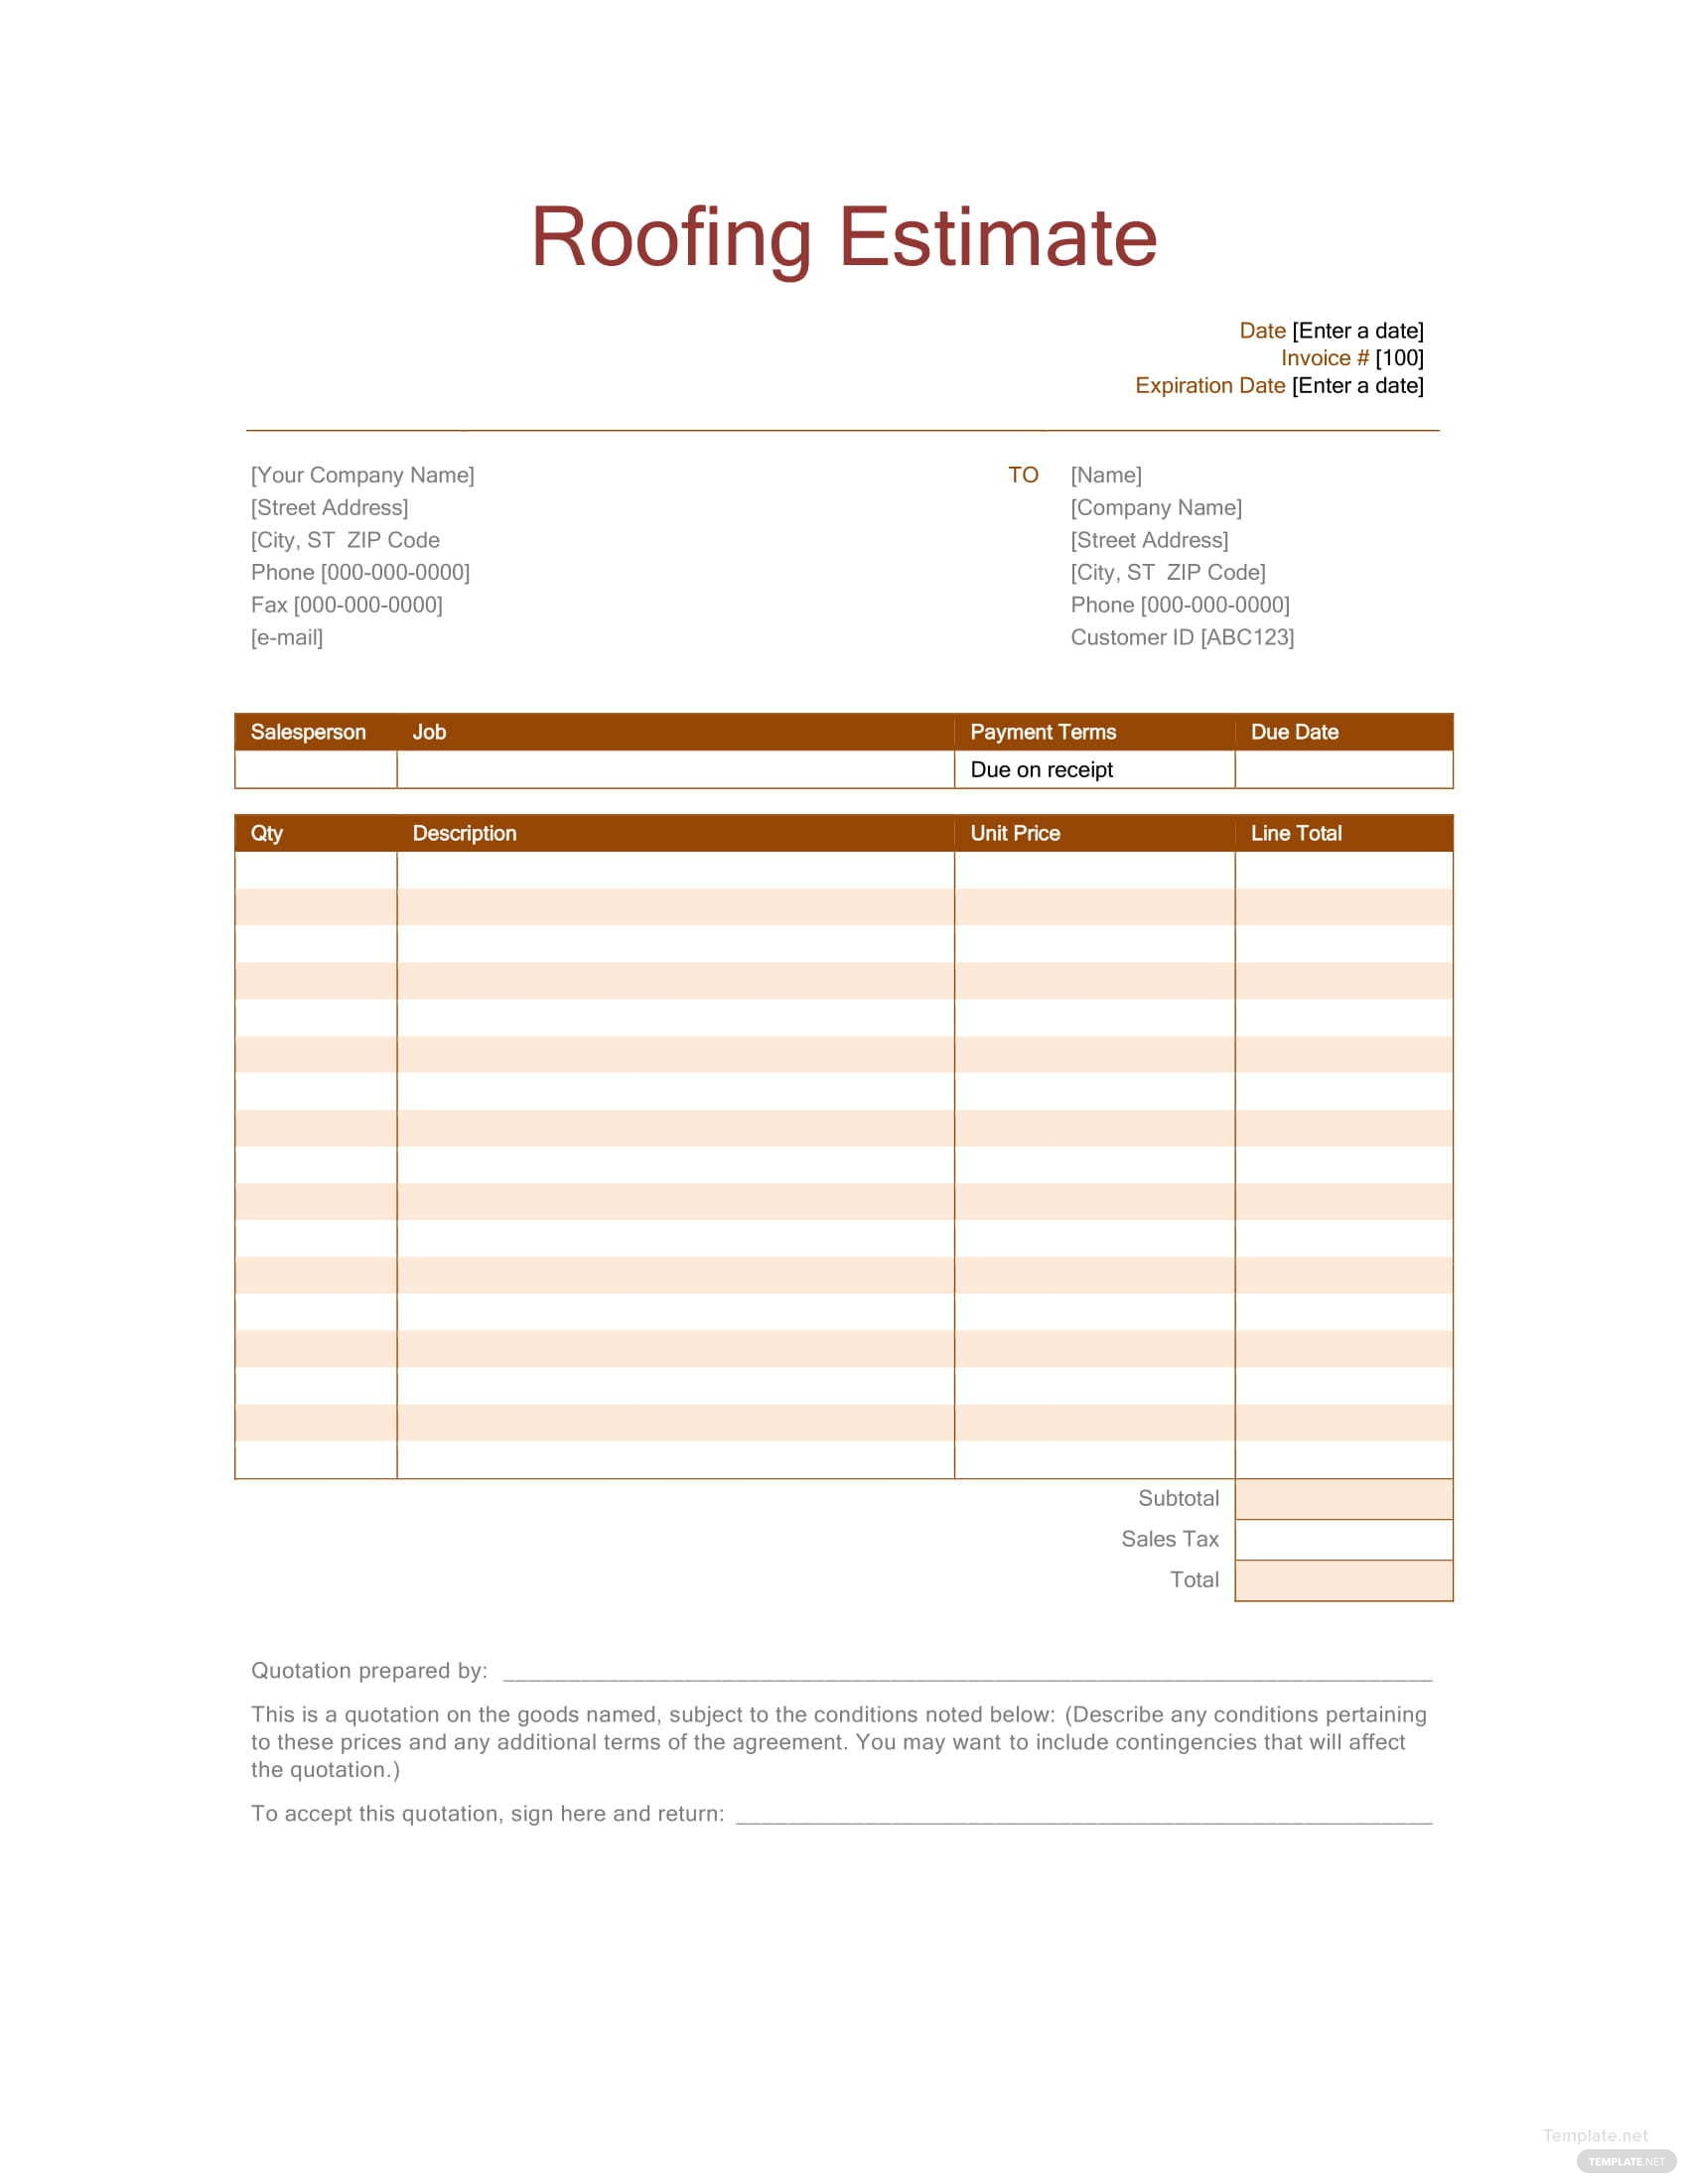 Roofing Estimate Template In Microsoft Word Excel